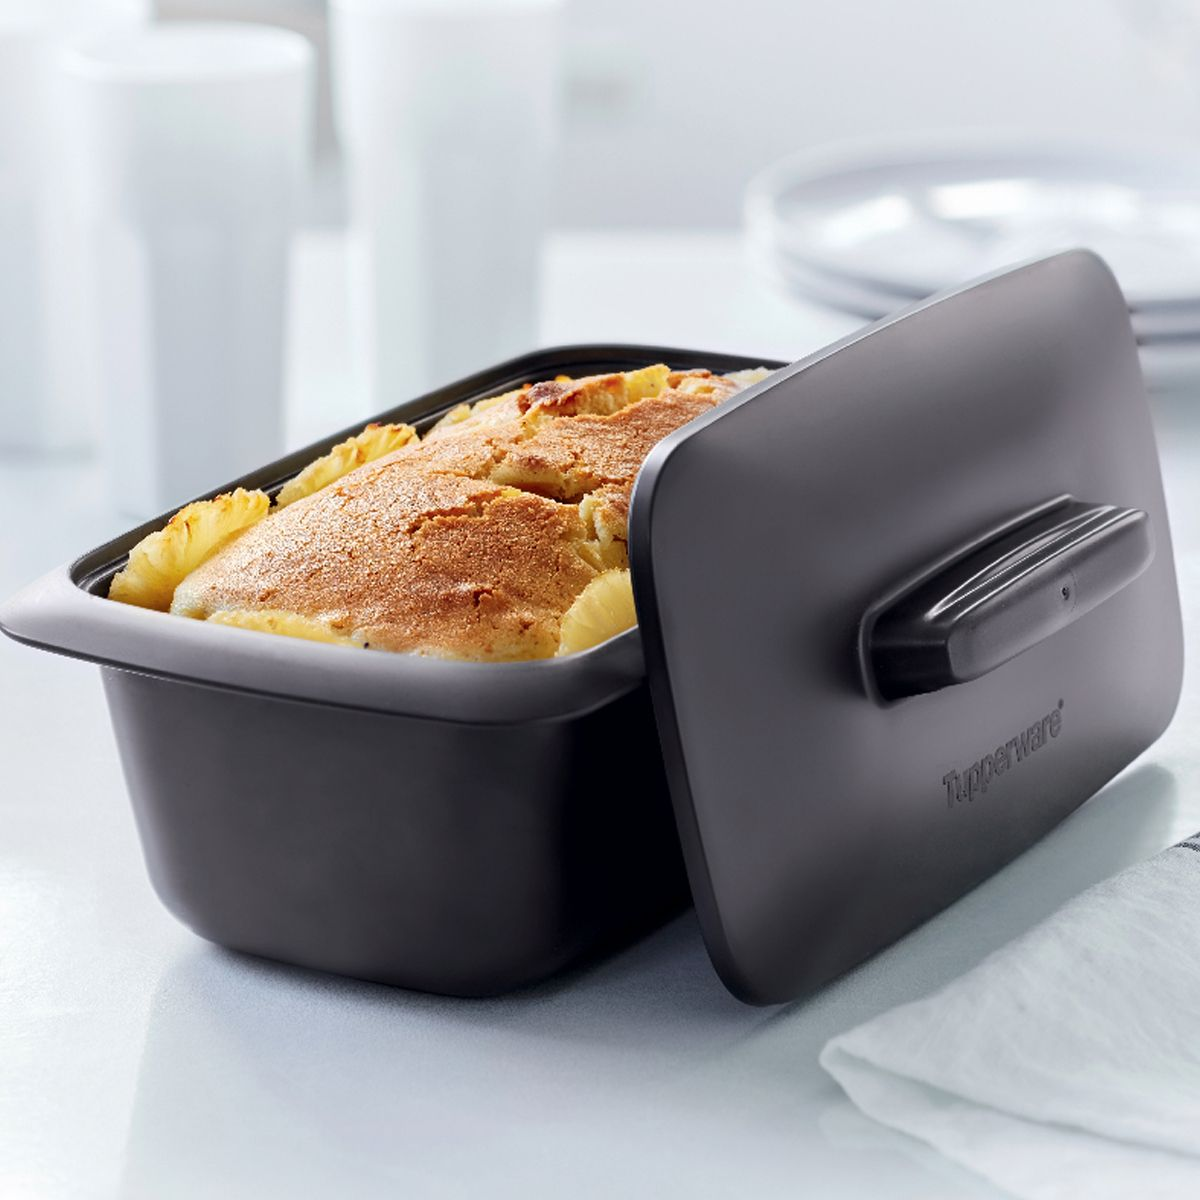 Can We Use Tupperware In Microwave Oven: We're Baking With Tupperware Today! The UltraPro Loaf Pan